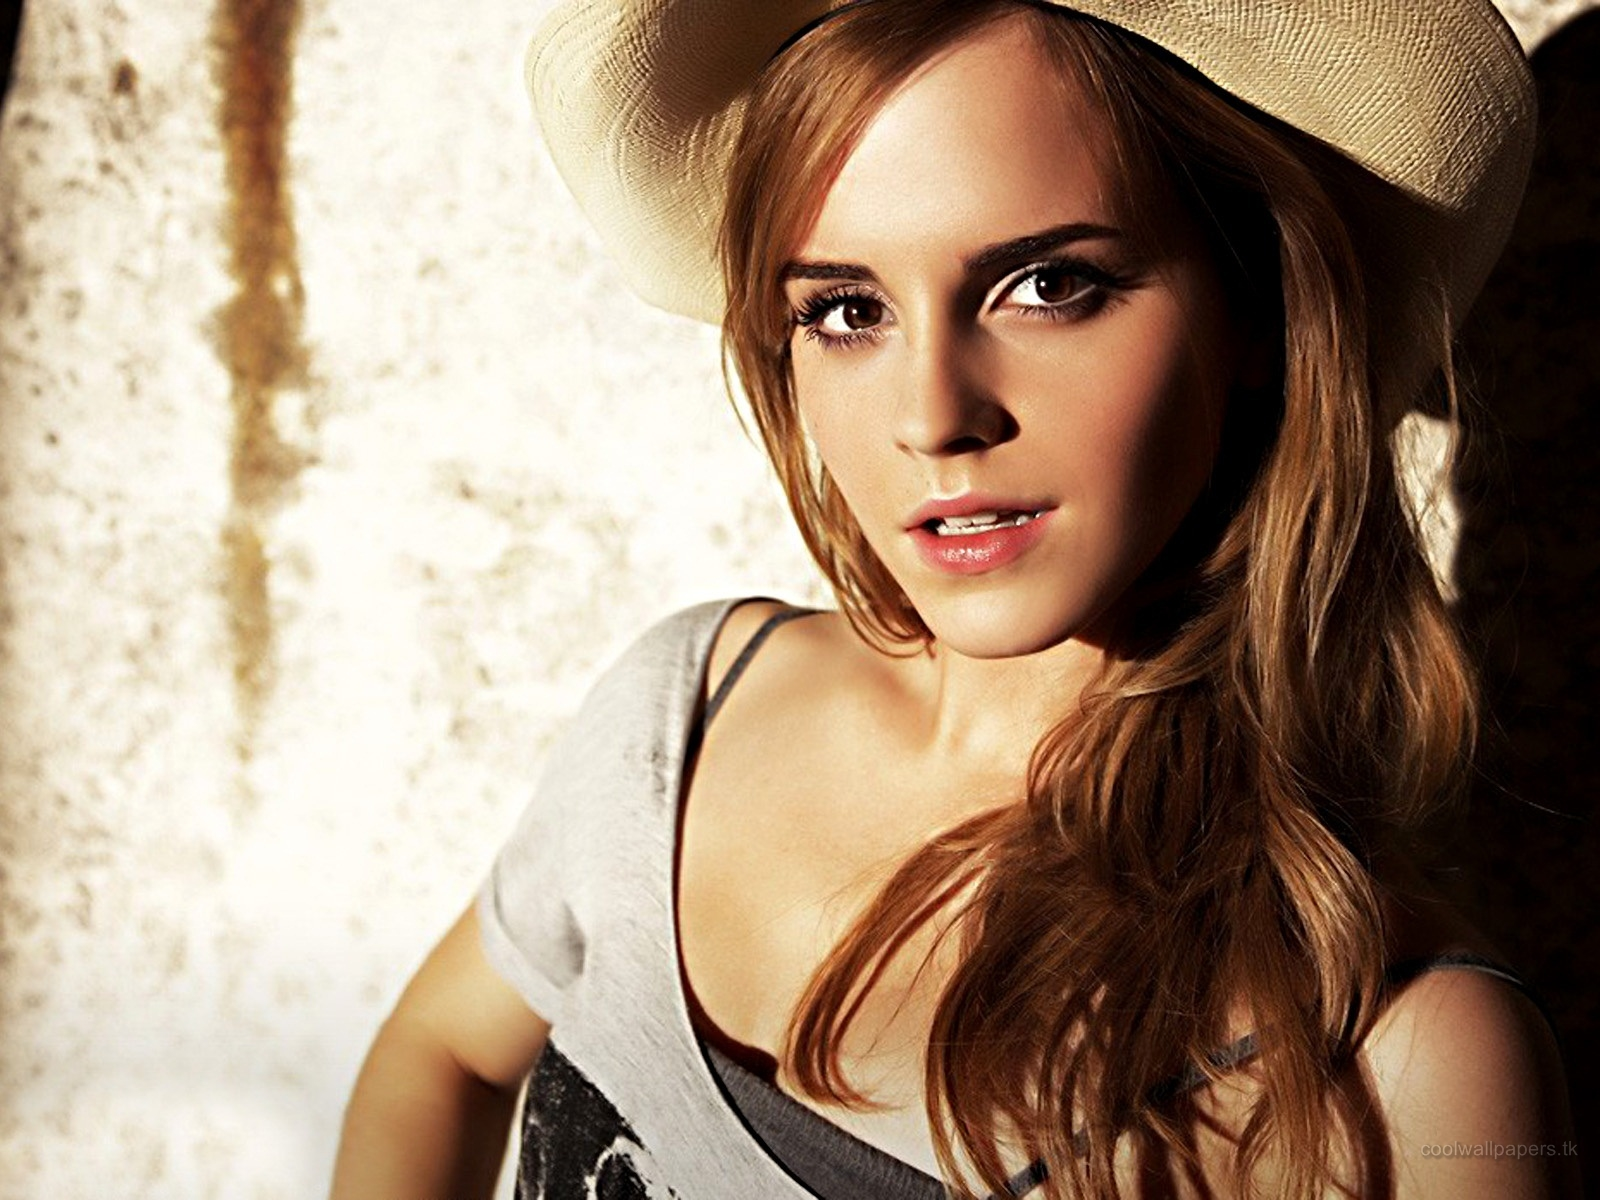 emma watson hot wallpapers ~ cheer arena | wallpapers world